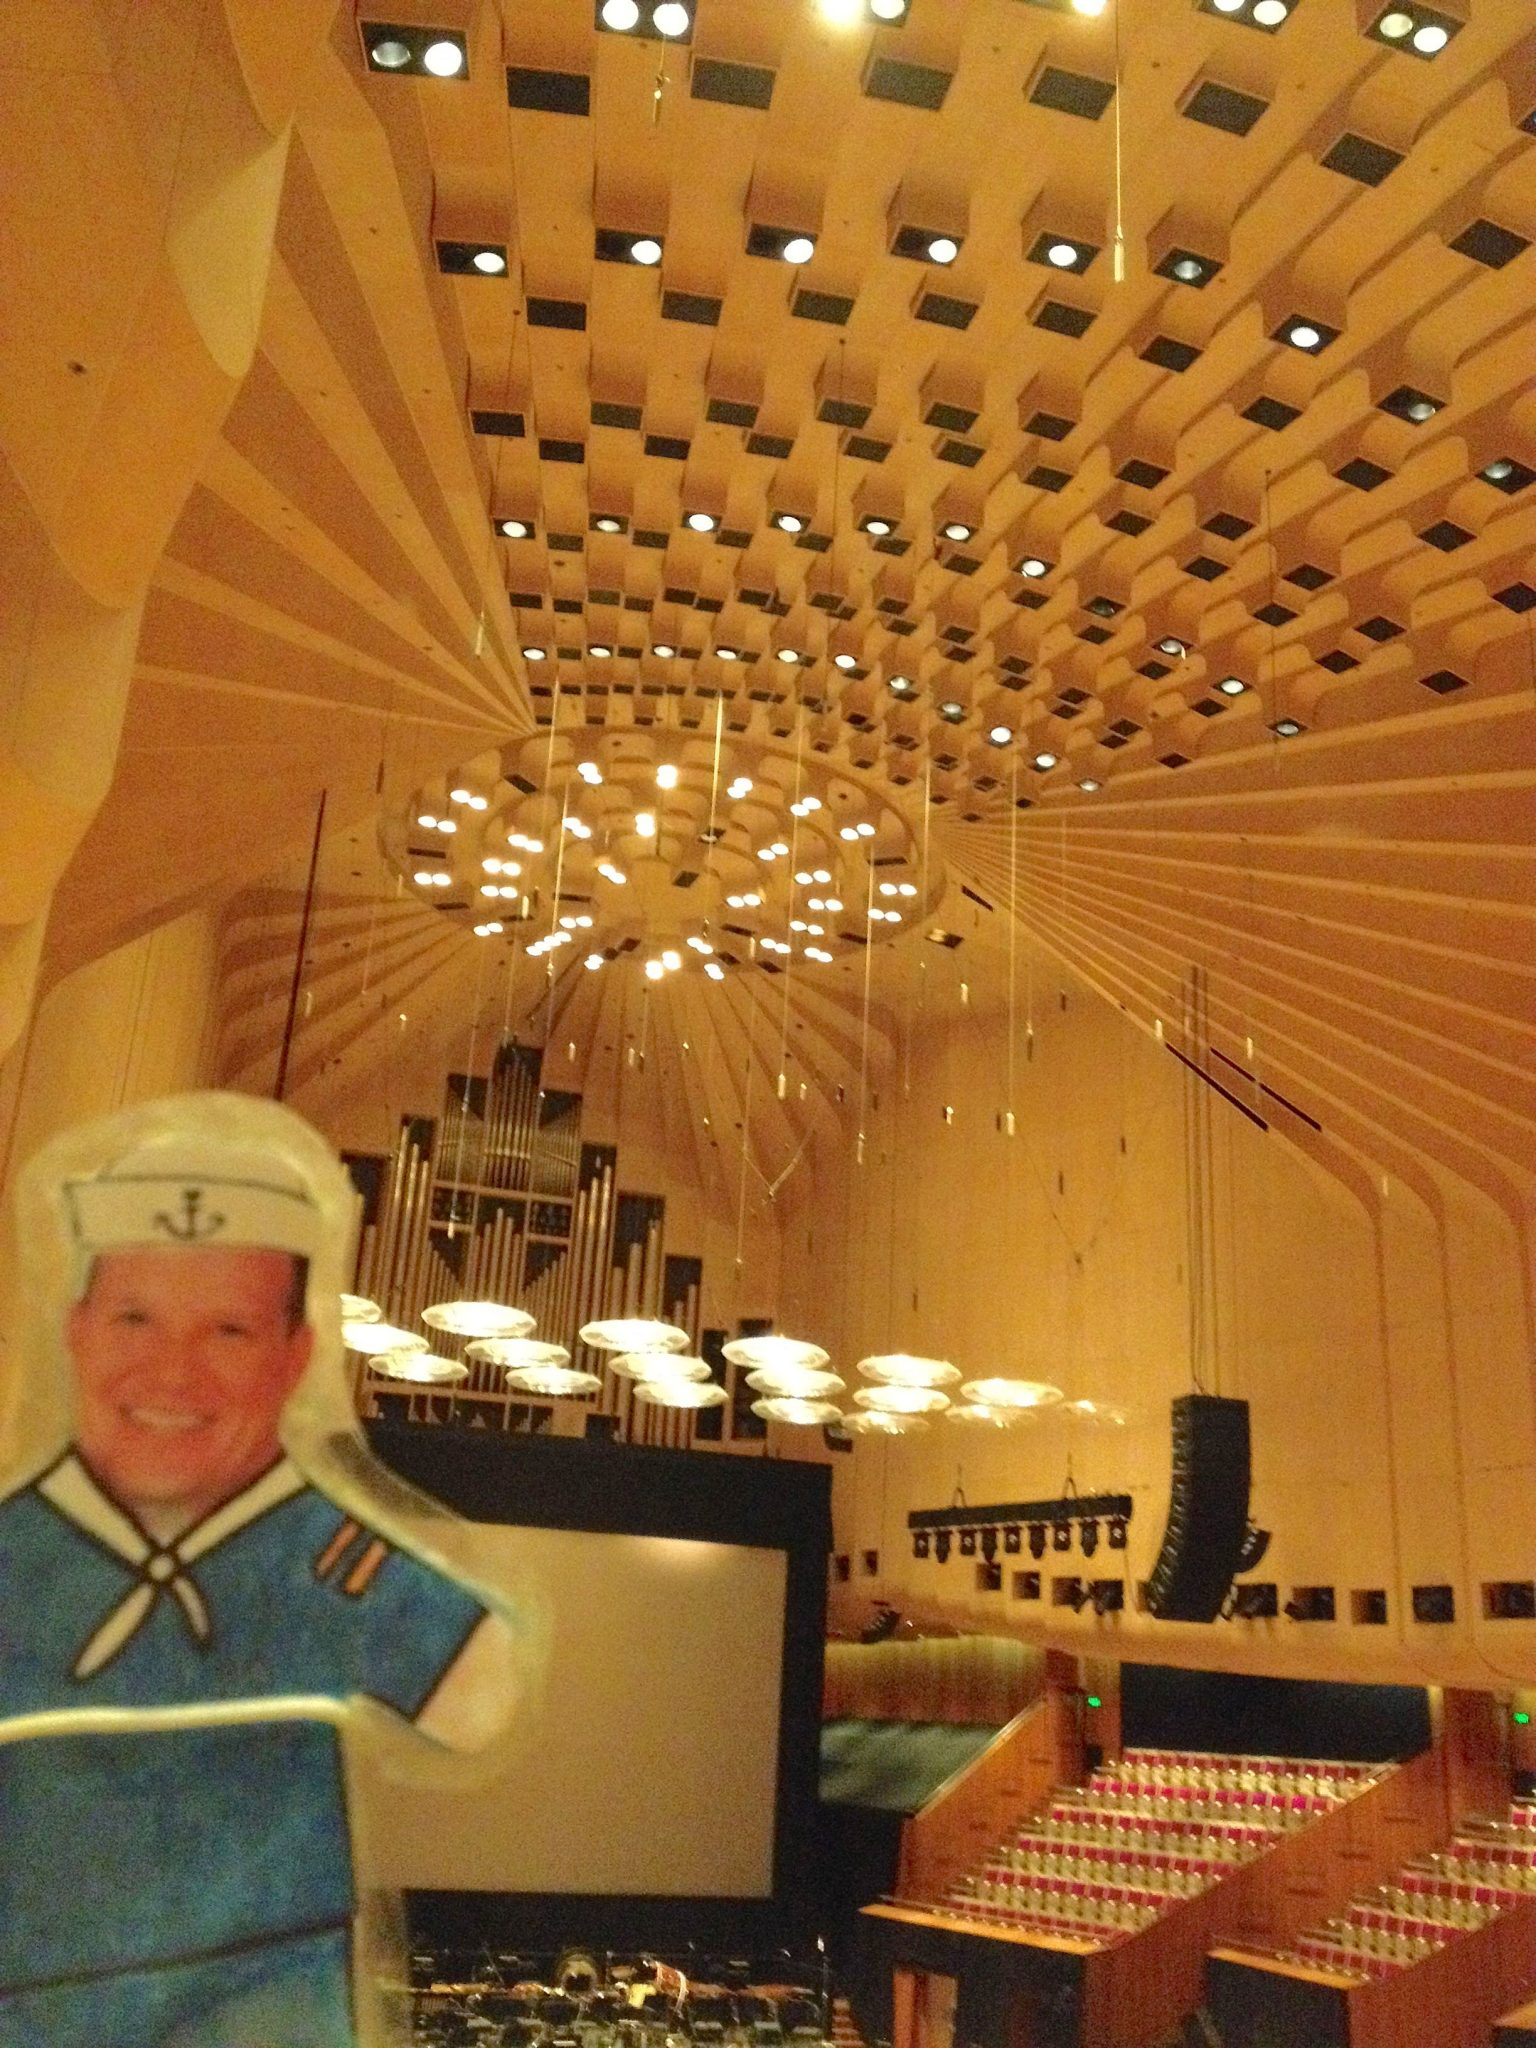 111. Flat Mr. Davis was intrigued with the architectural elements insuriing superior acoustics in the concert hall